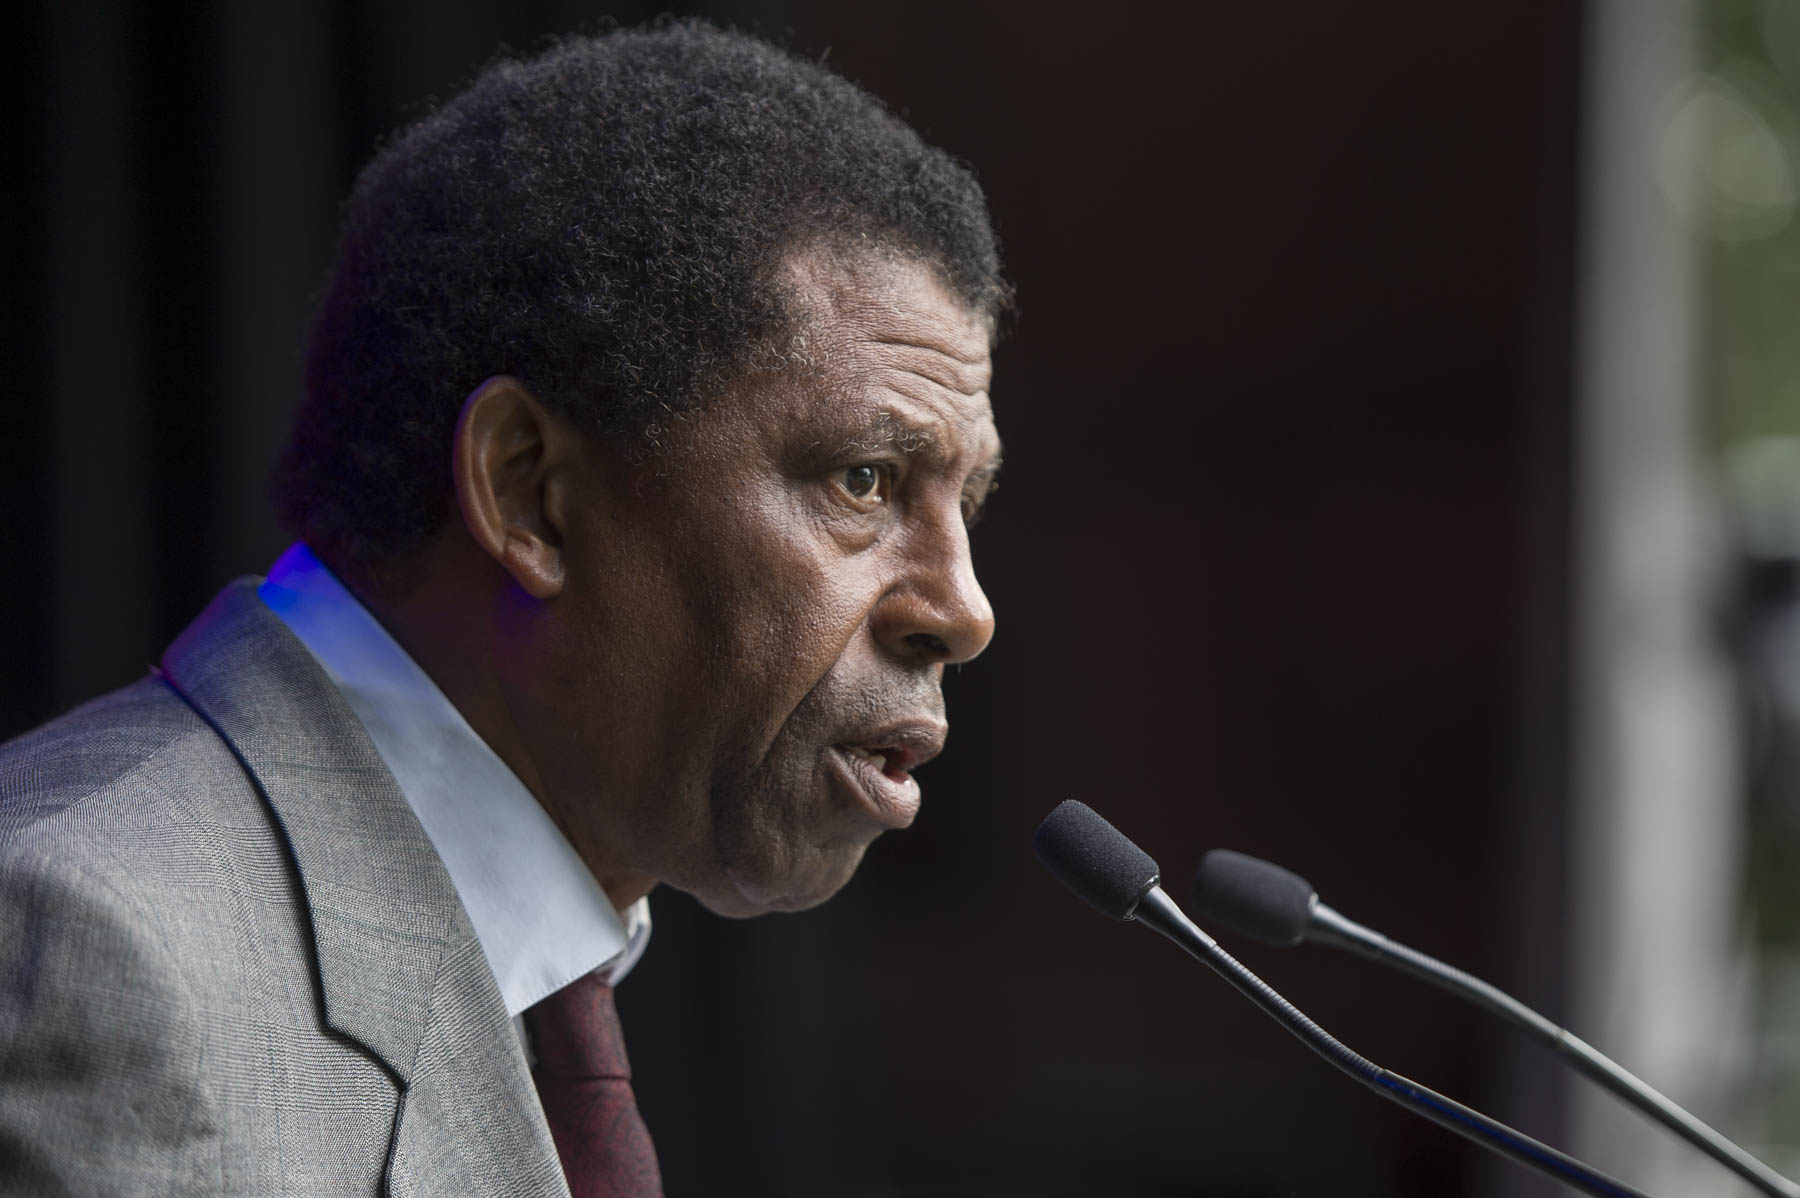 Dany Laferrière, O.C., one of the leading figures in French-Canadian literature, also shared thoughtful remarks.